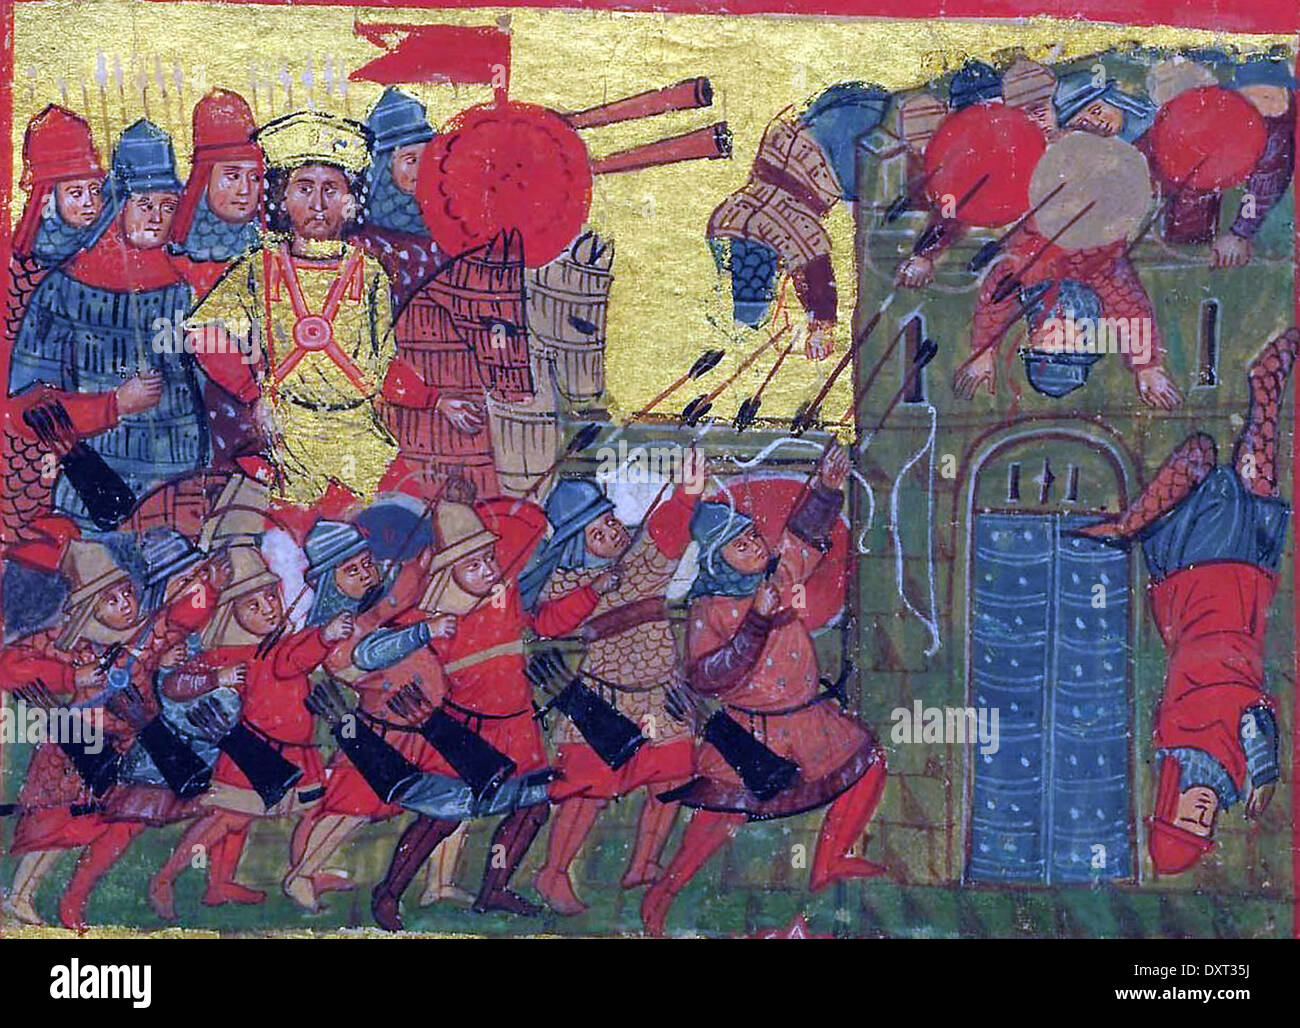 Alexander the Great and infantry invading Athens - Stock Image